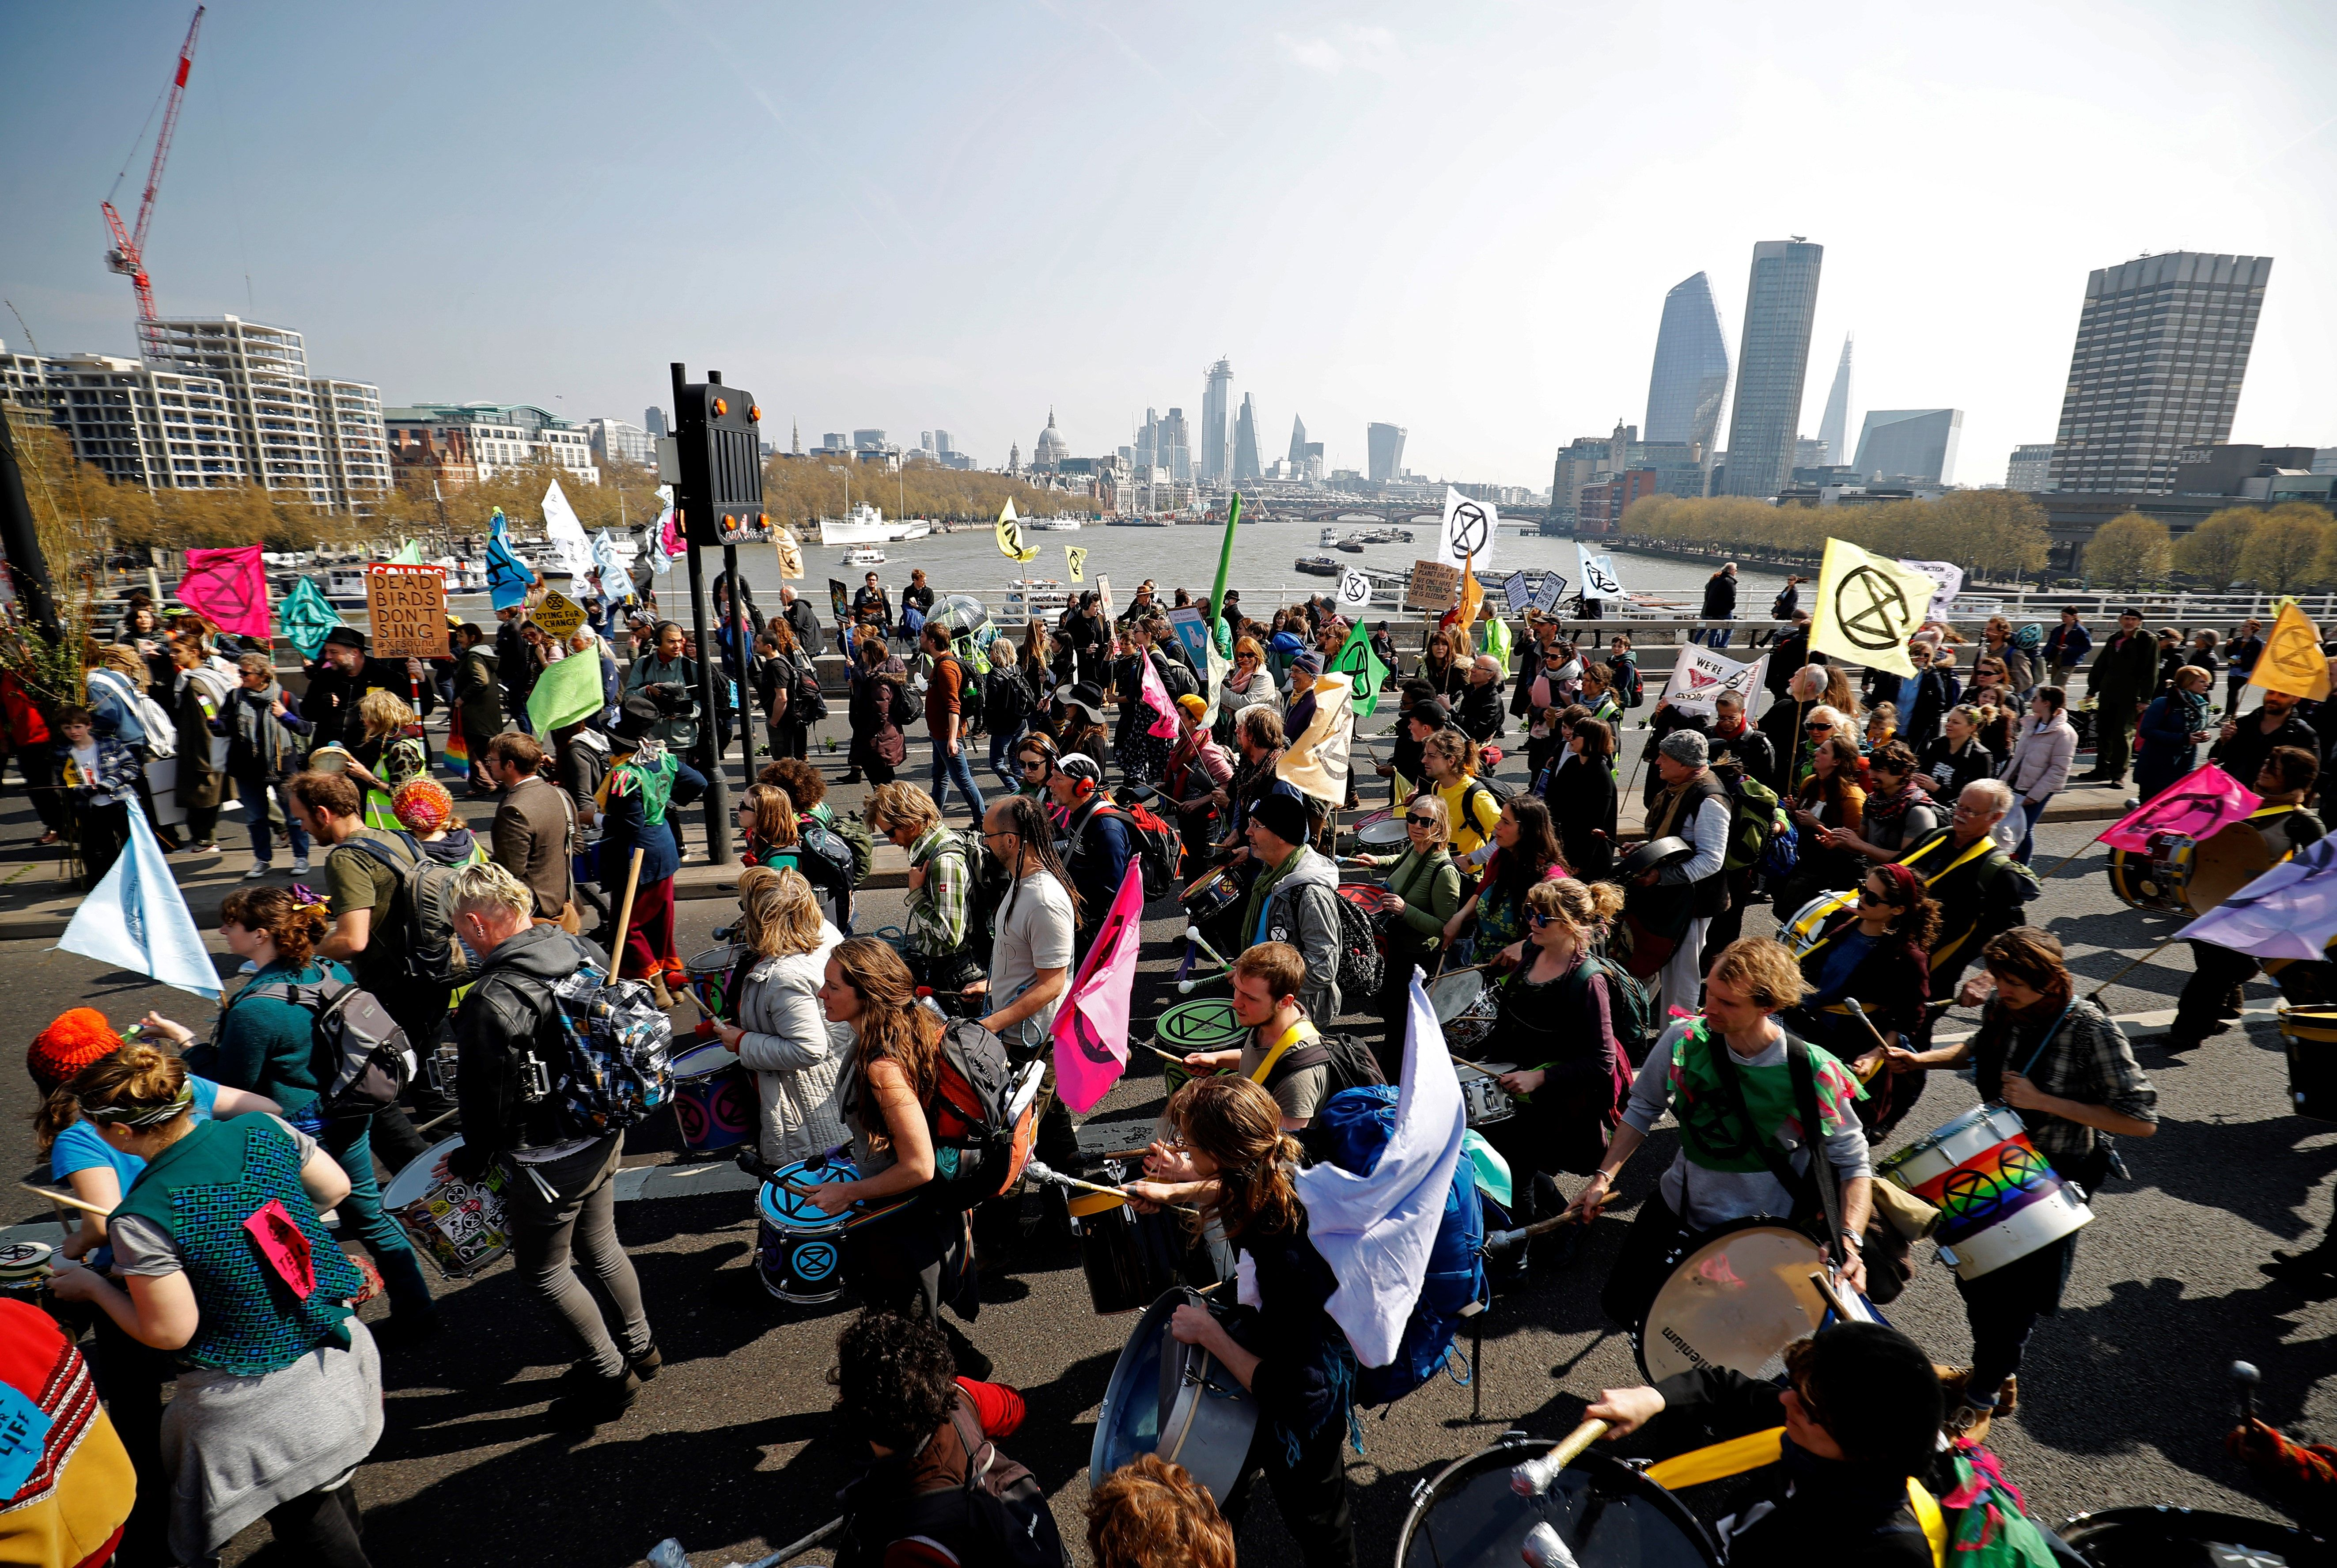 Environmental protesters from the Extinction Rebellion arrive to stage a demonstration, on Waterloo Bridge in London on April 15, 2019. (TOLGA AKMEN/AFP/Getty Images)